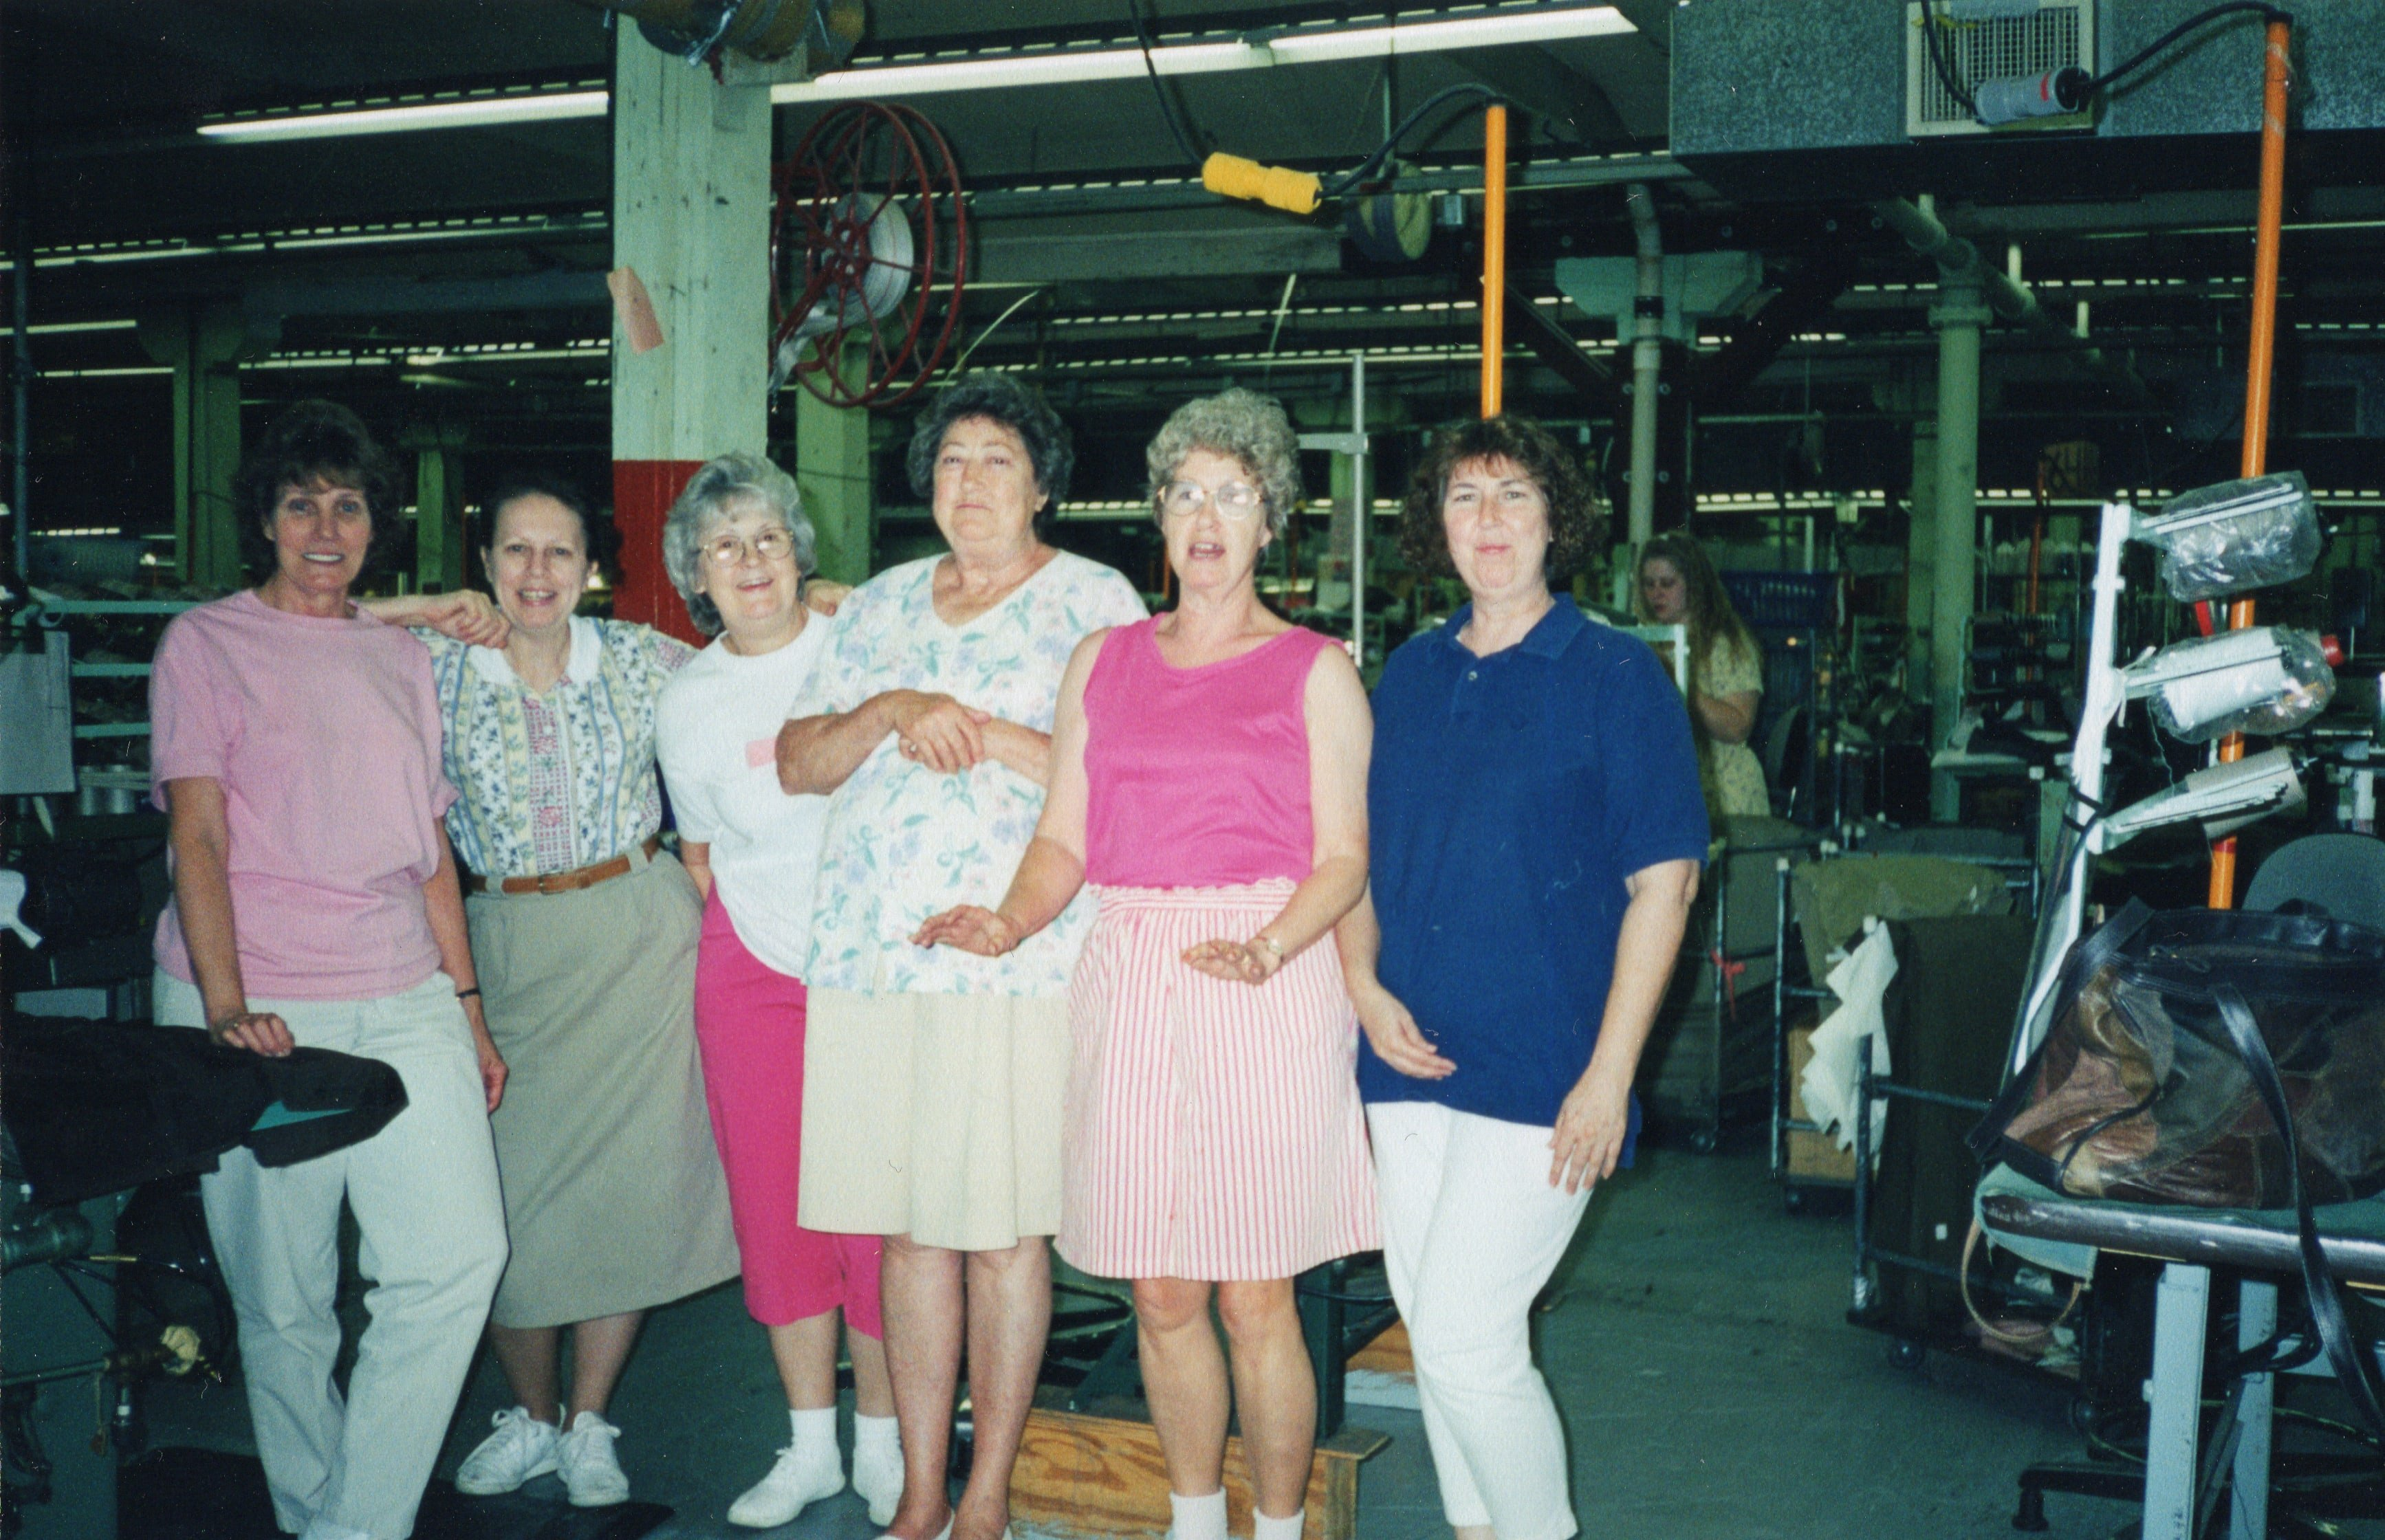 Corbin Ltd. Machine Operators Lorella Cooper, Unidentified, Unidentified, Myrtle Watson, Unidentified, and Linda Collins, Huntington, WV